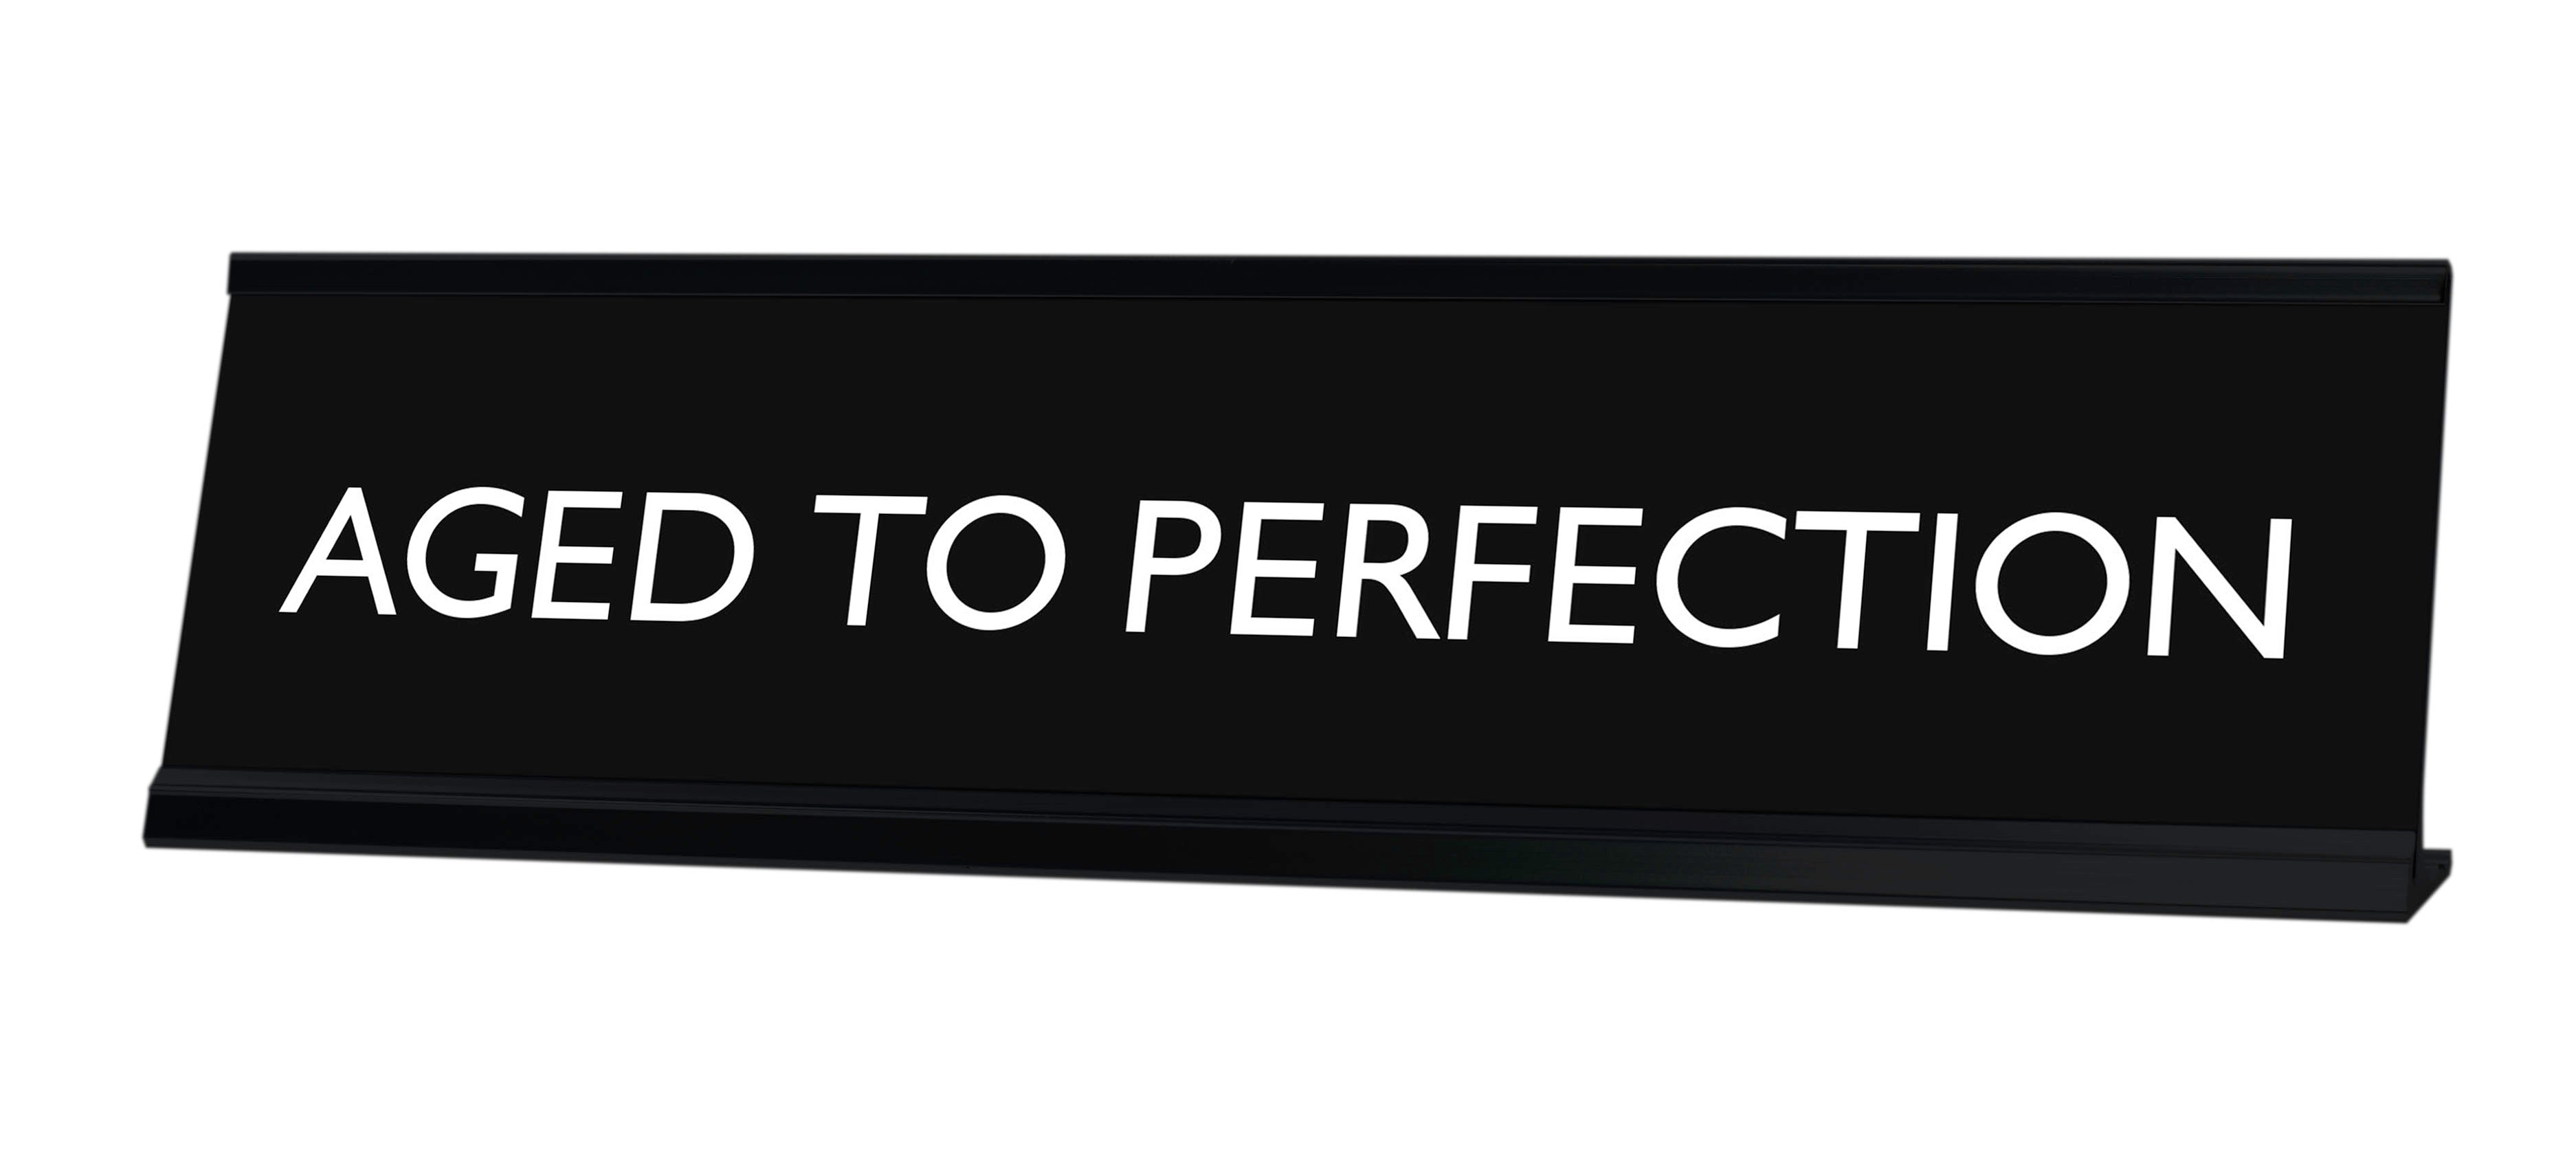 AGED TO PERFECTION Novelty Desk Sign